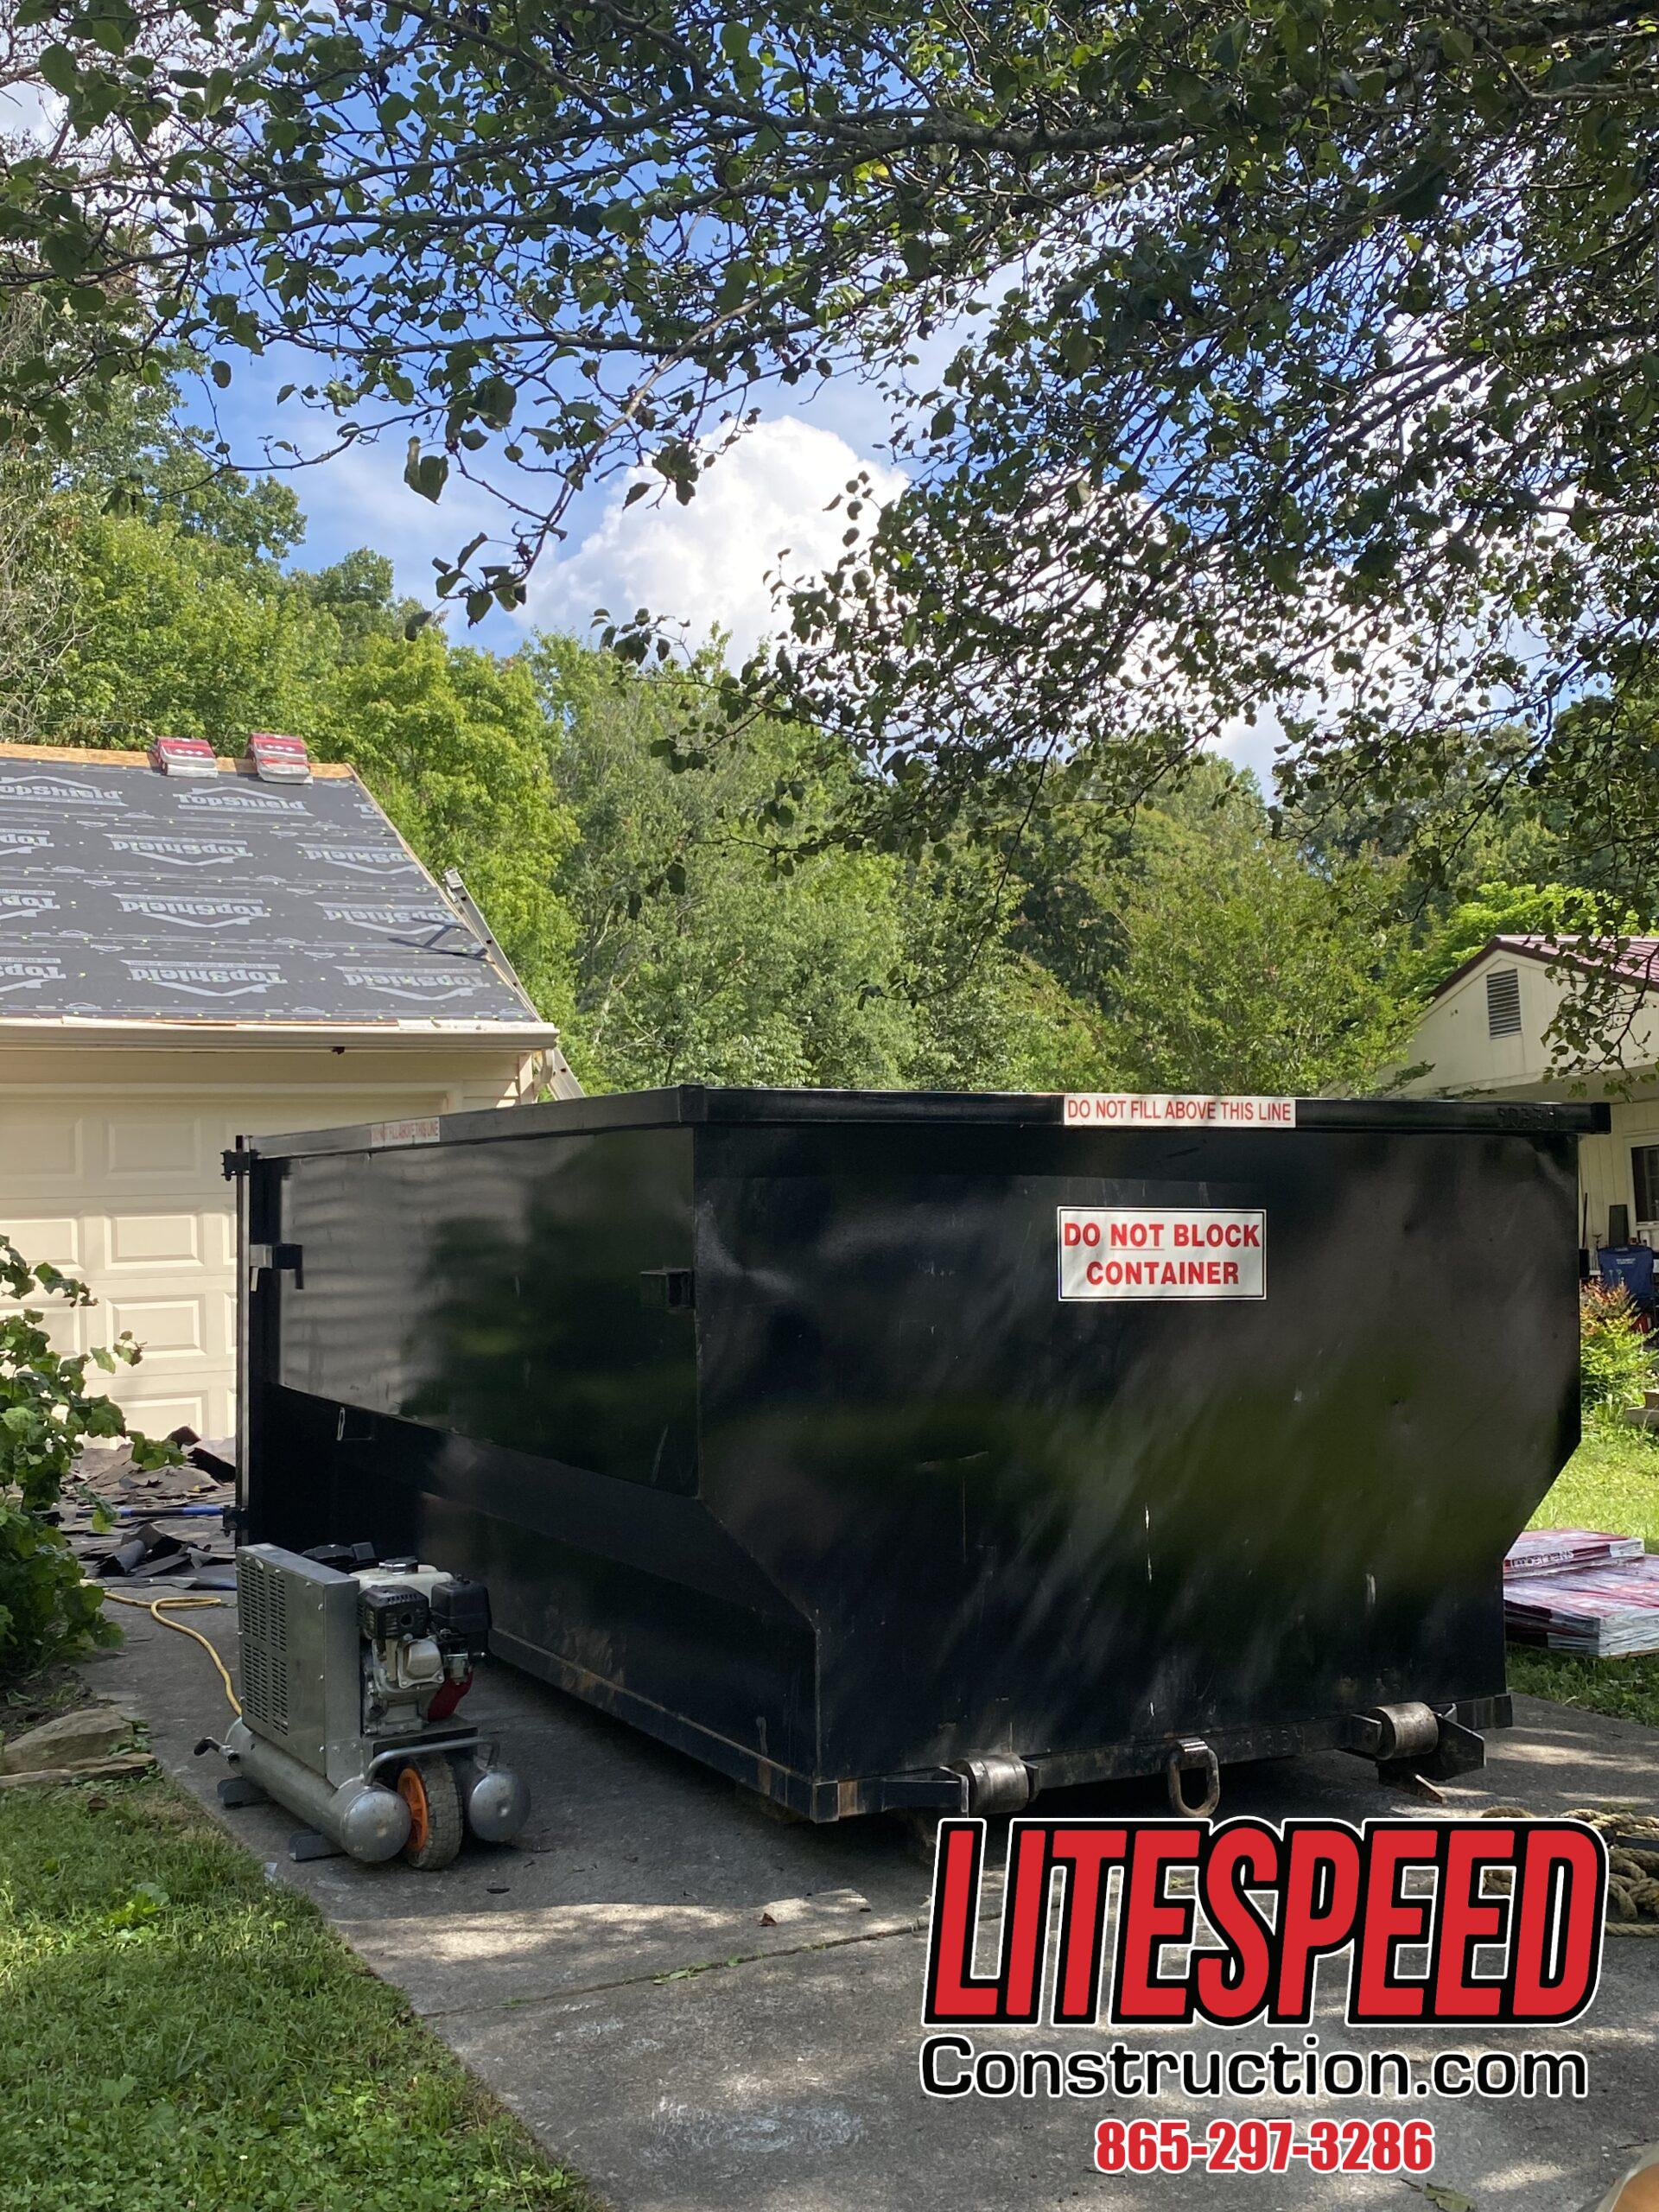 This is a picture of a black dumpster at the driveway of a house